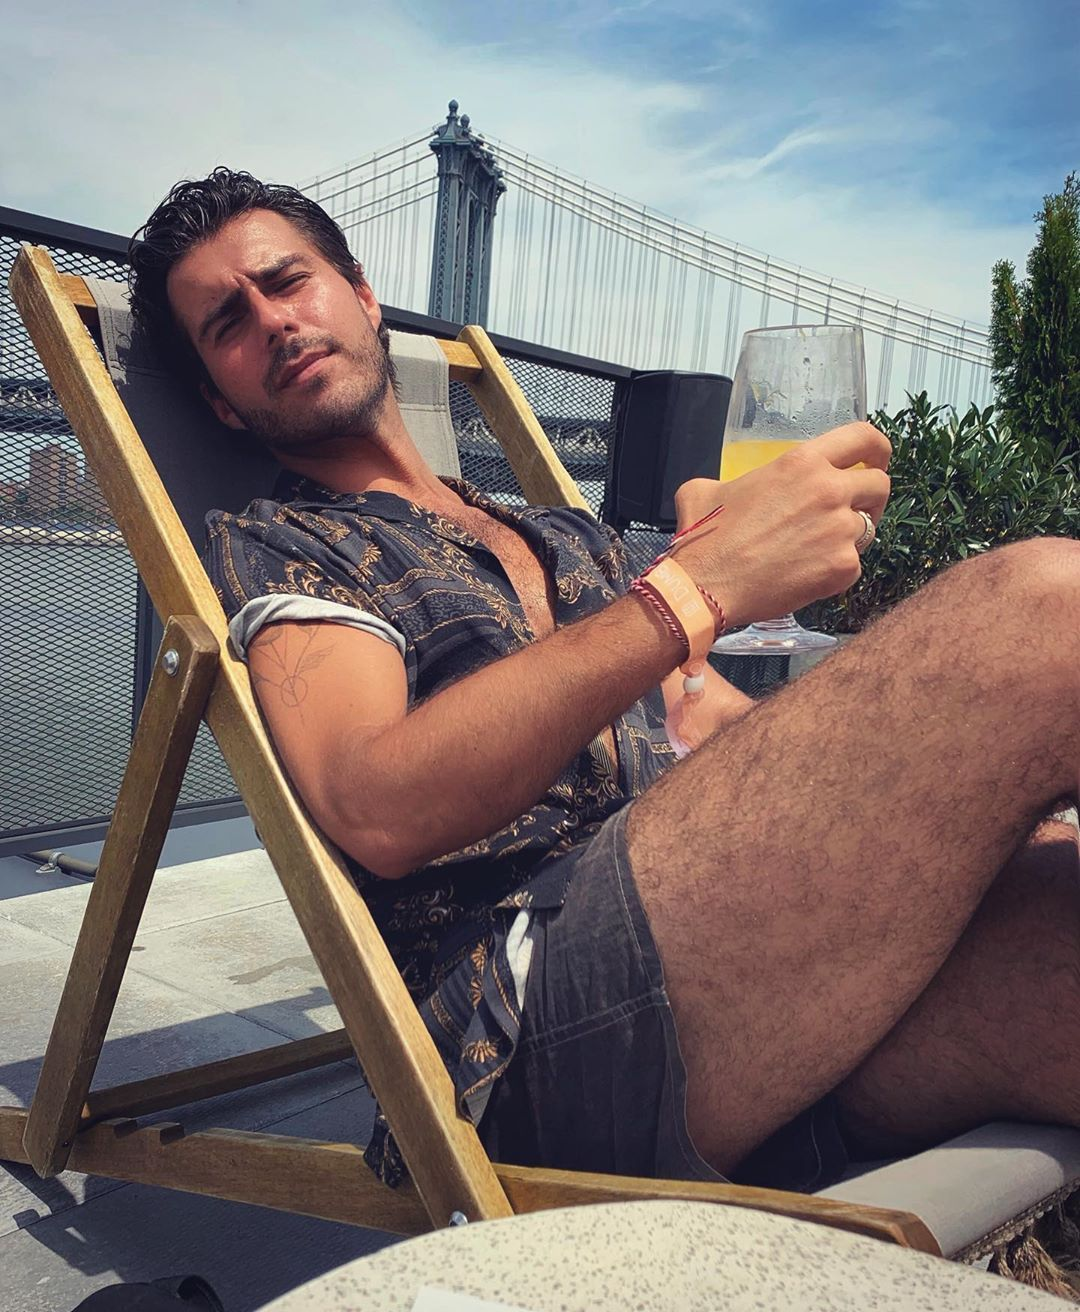 Image may contain: Made in Chelsea cast now, Made in Chelsea, cast, then, now, before, after, iconic, Alik, Alfus, 2019, original, Skin, Plywood, Shorts, Beard, Clothing, Apparel, Wood, Person, Human, Face